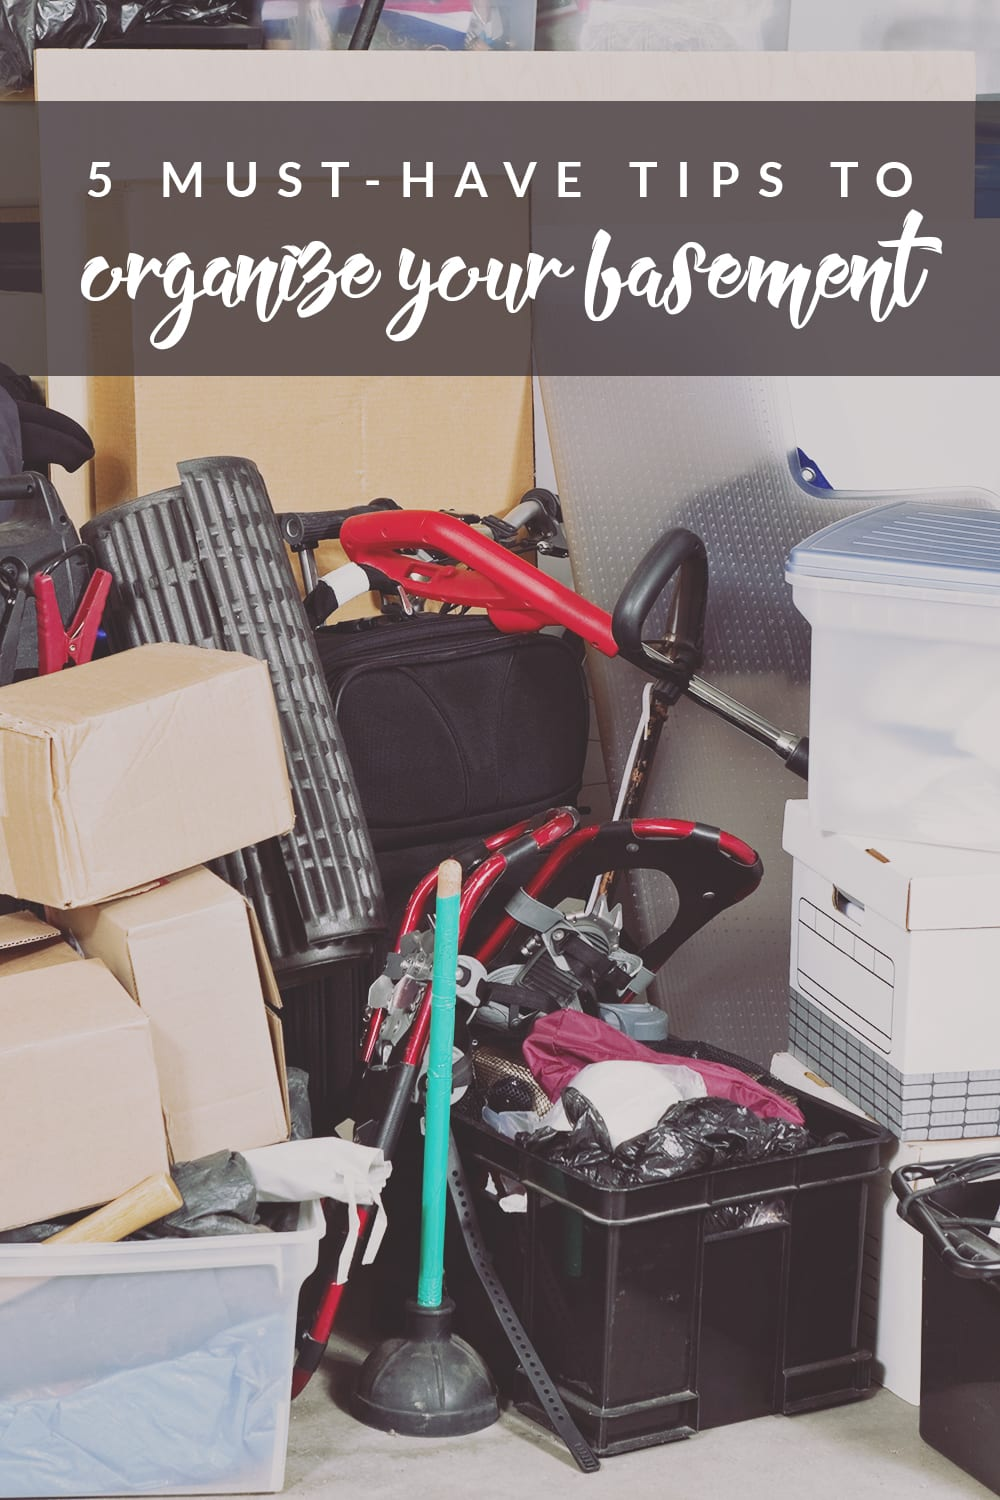 These five must-have tips will help you organize your entire basement with easy storage solutions for all of your belongings.